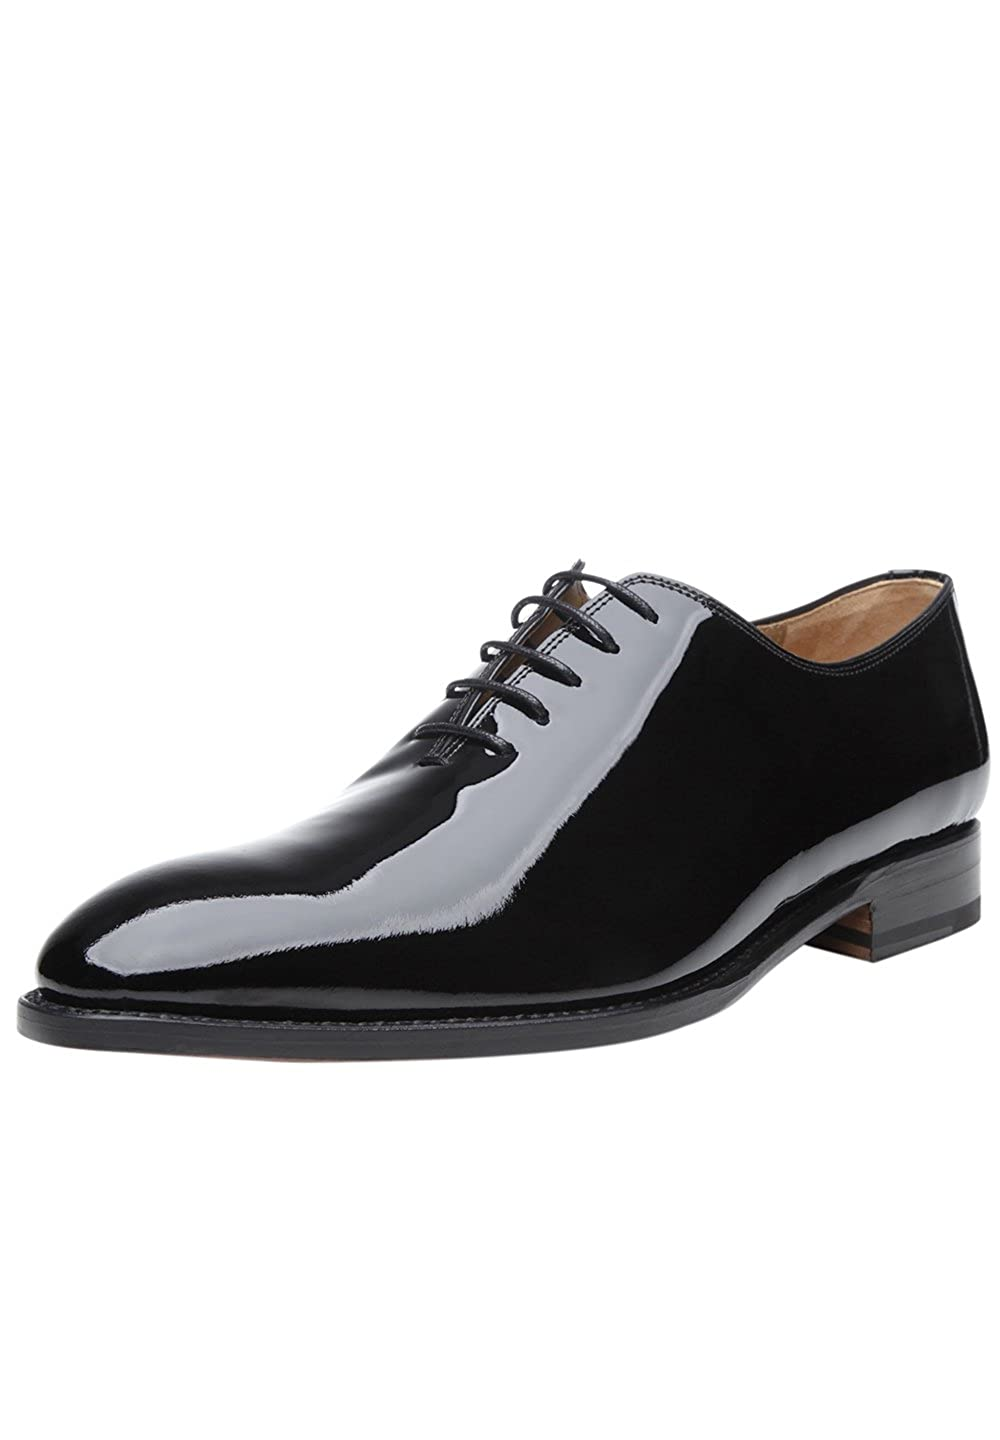 huge selection of a3e43 f92ba SchuhePASSION - No. 521 - Businessschuhe - - - Exklusiver ...